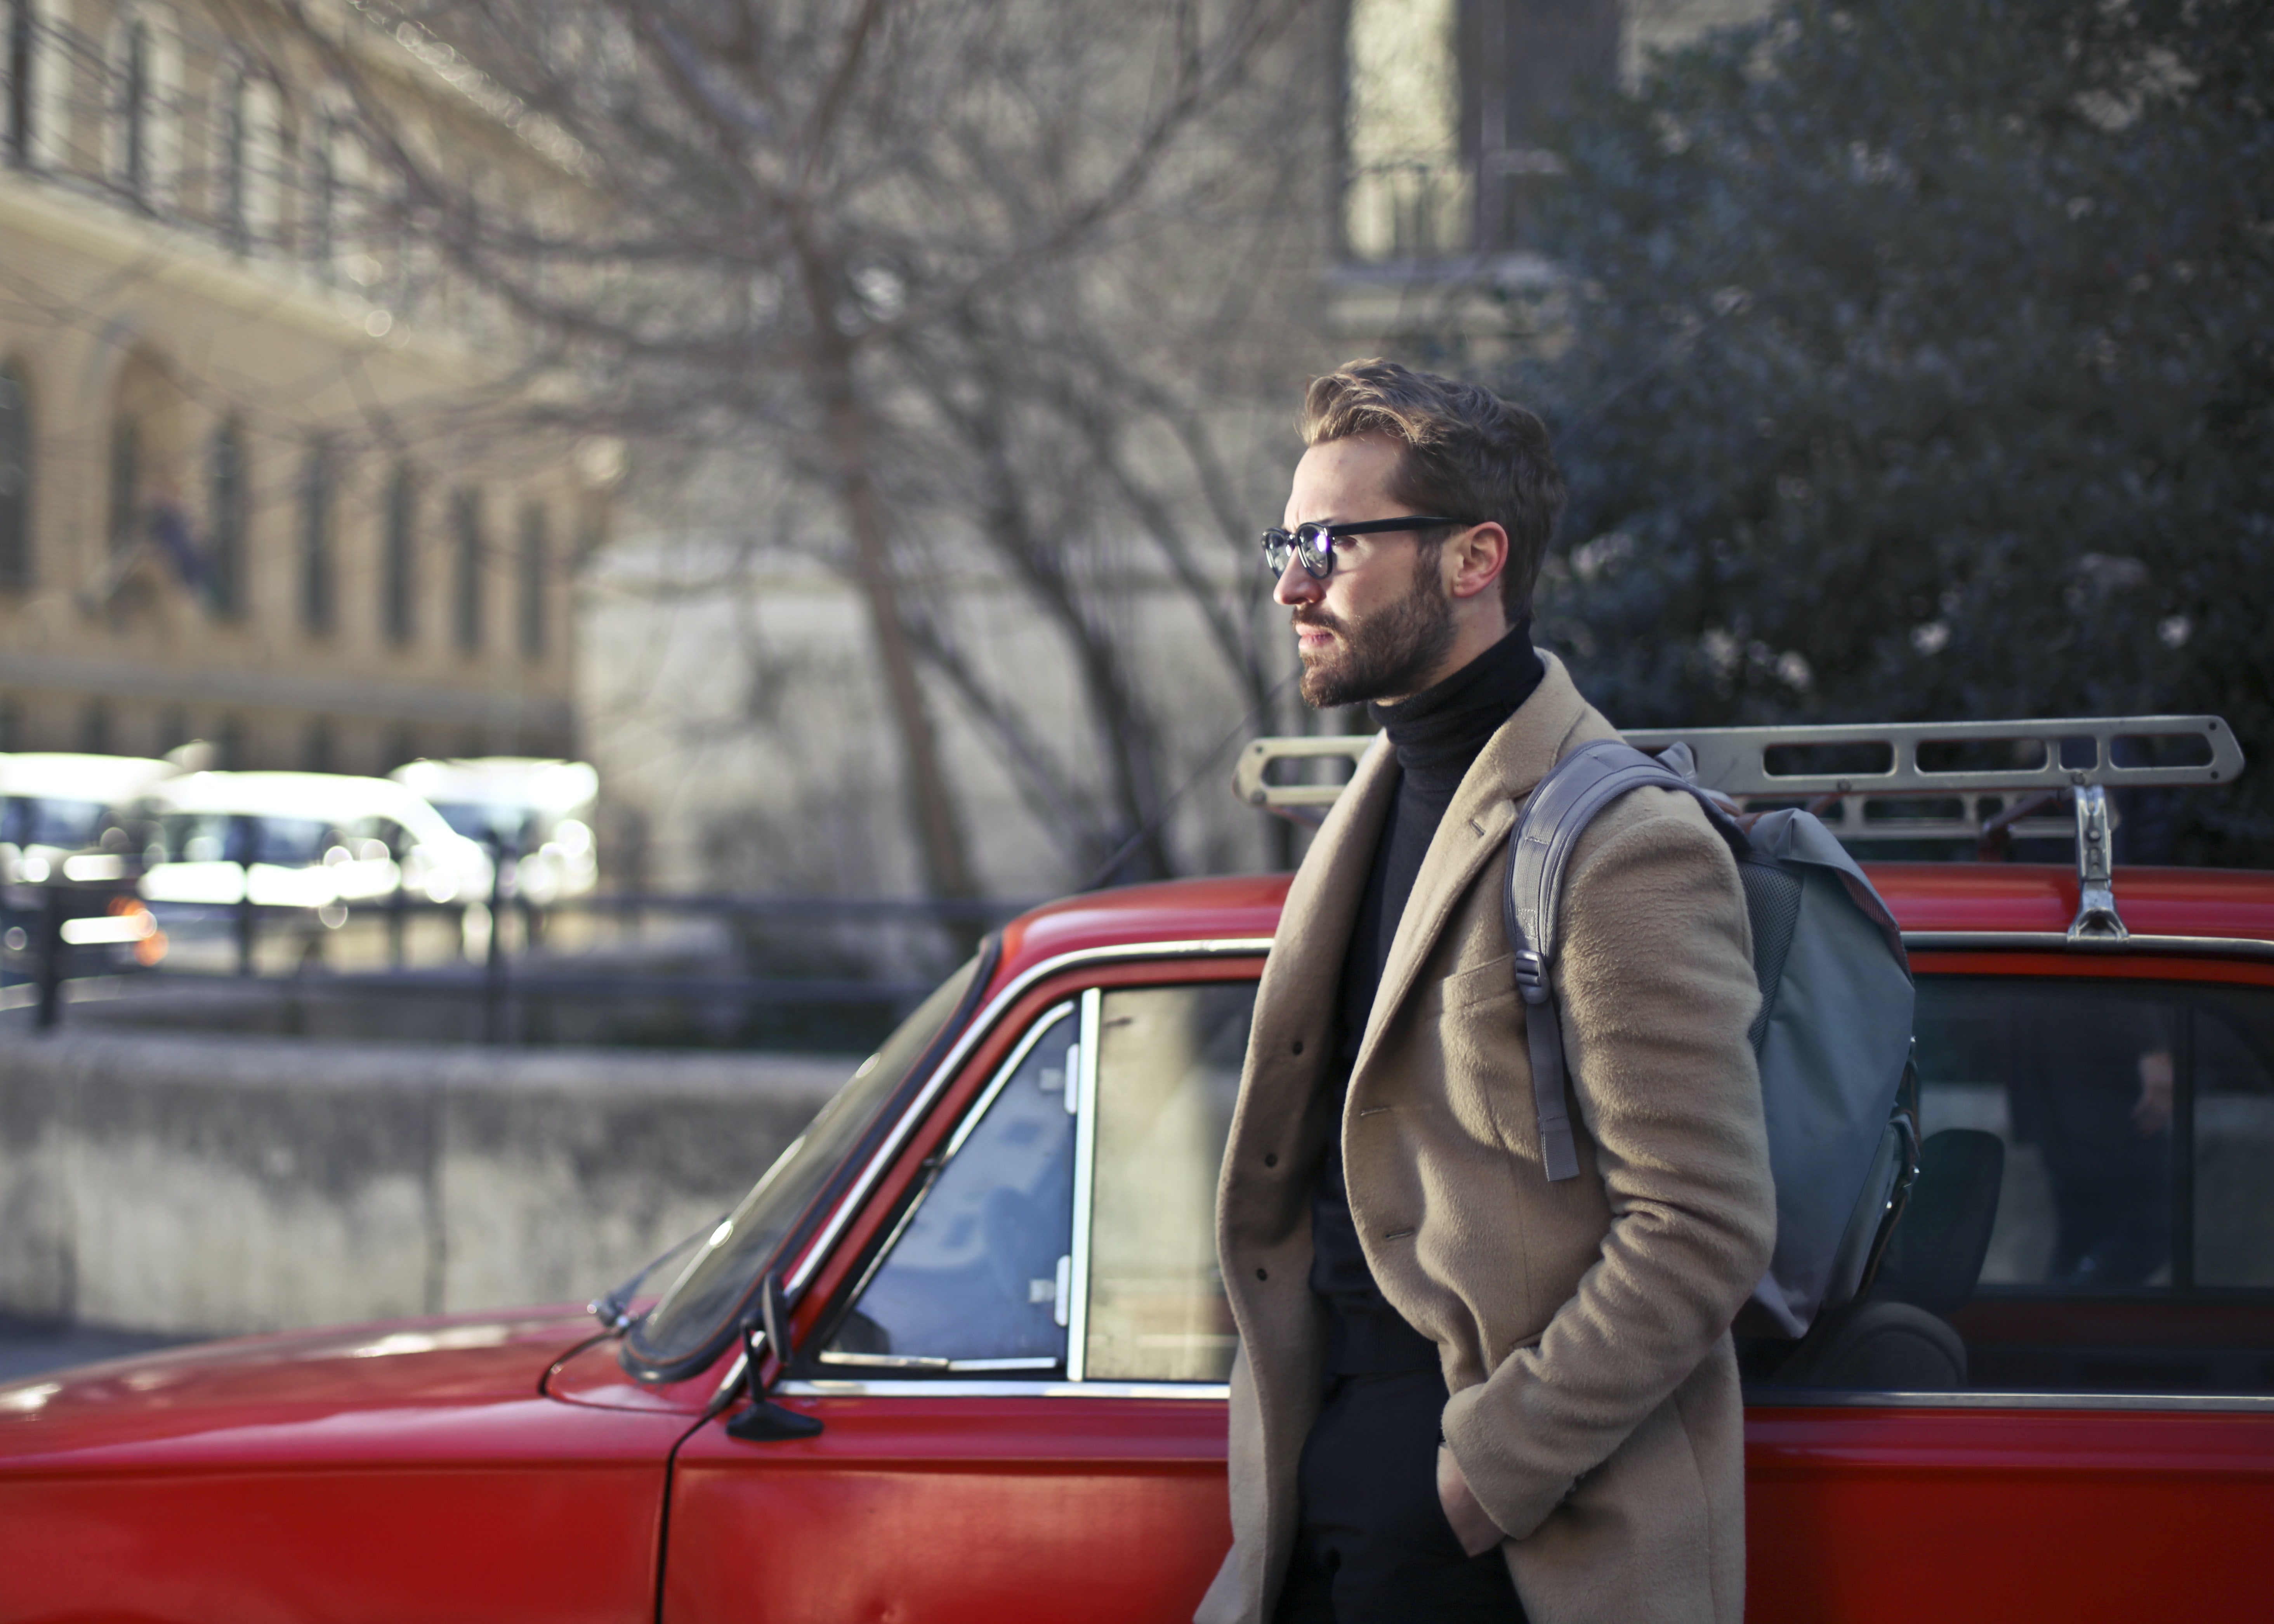 man on beige coat standing beside red car